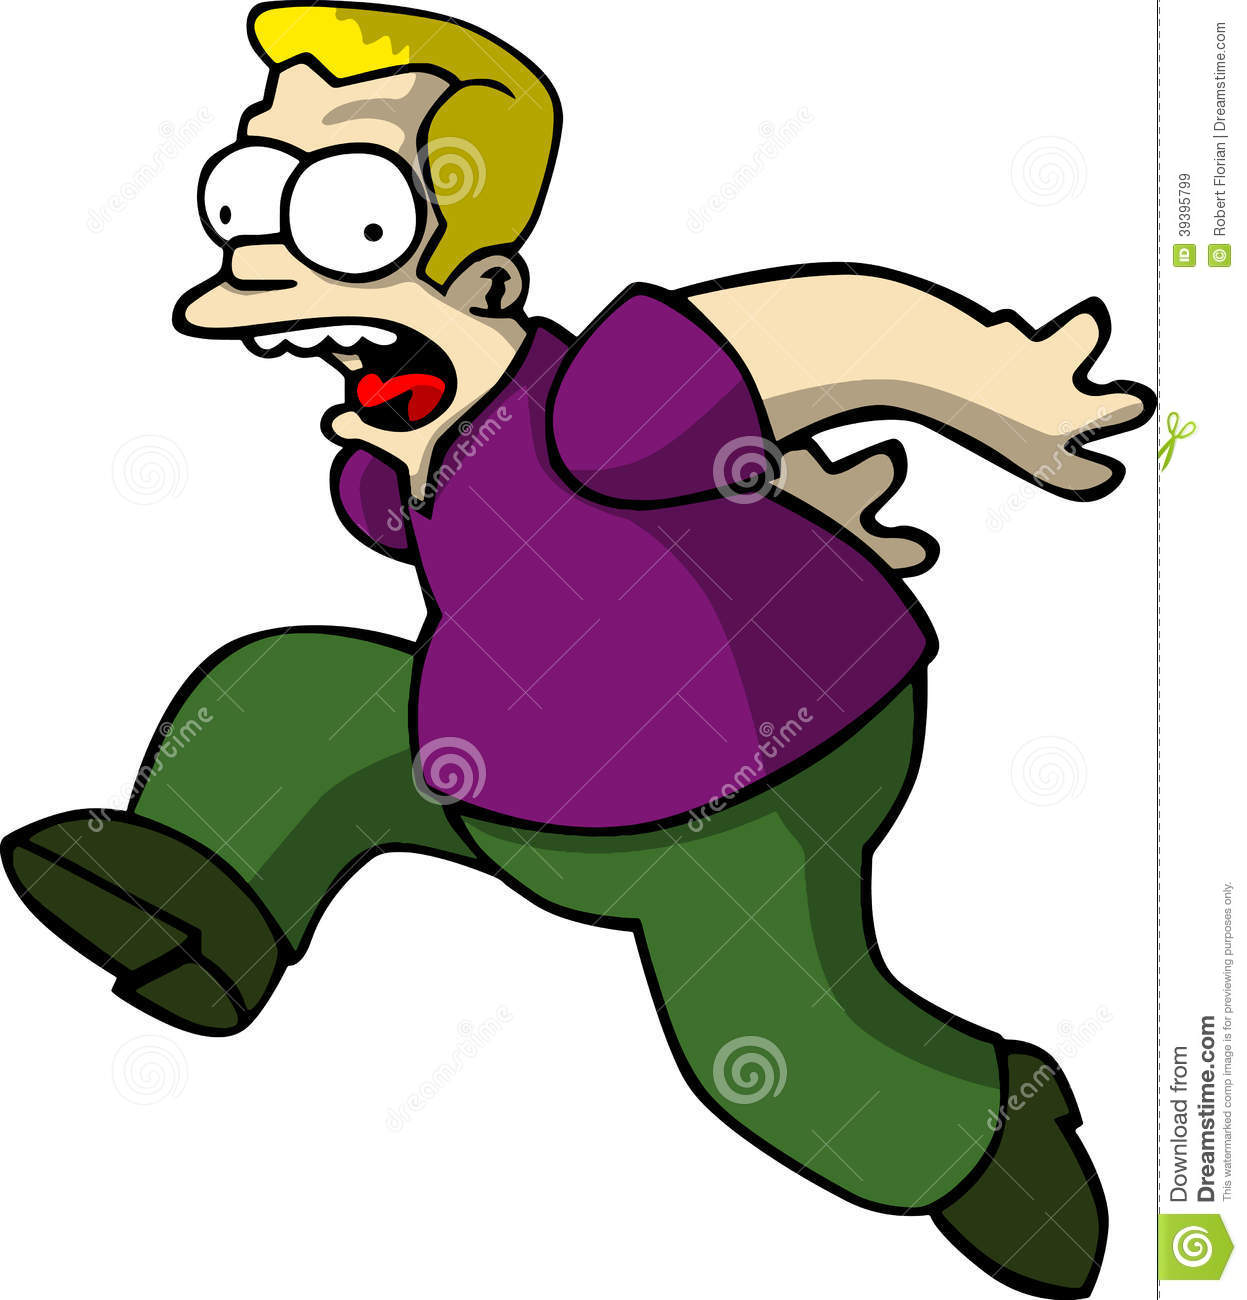 Royalty Free Stock Images: Cartoon Man scared. Image: 39395799